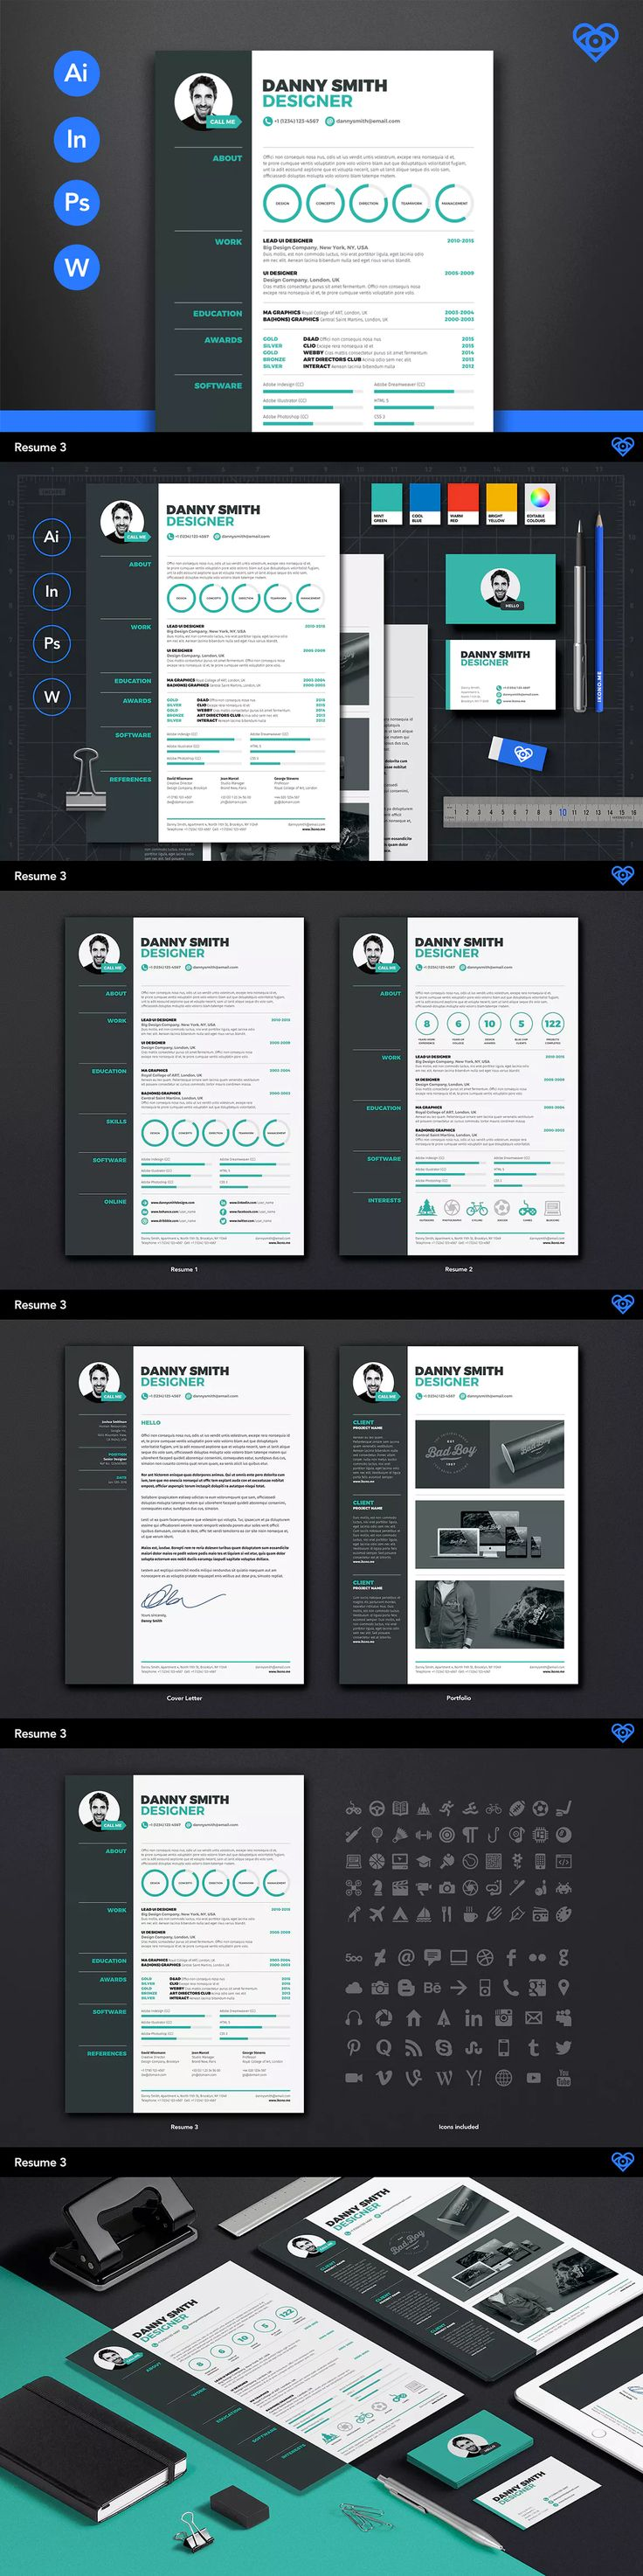 Mba Candidate Resume Pdf  Best Resume  Cv Design Tempaltes Images On Pinterest  Cv  How To Make A Perfect Resume Word with Sales Summary Resume Excel Resume Template Ai Indd Eps Ms Word Bullet Points In Resume Pdf